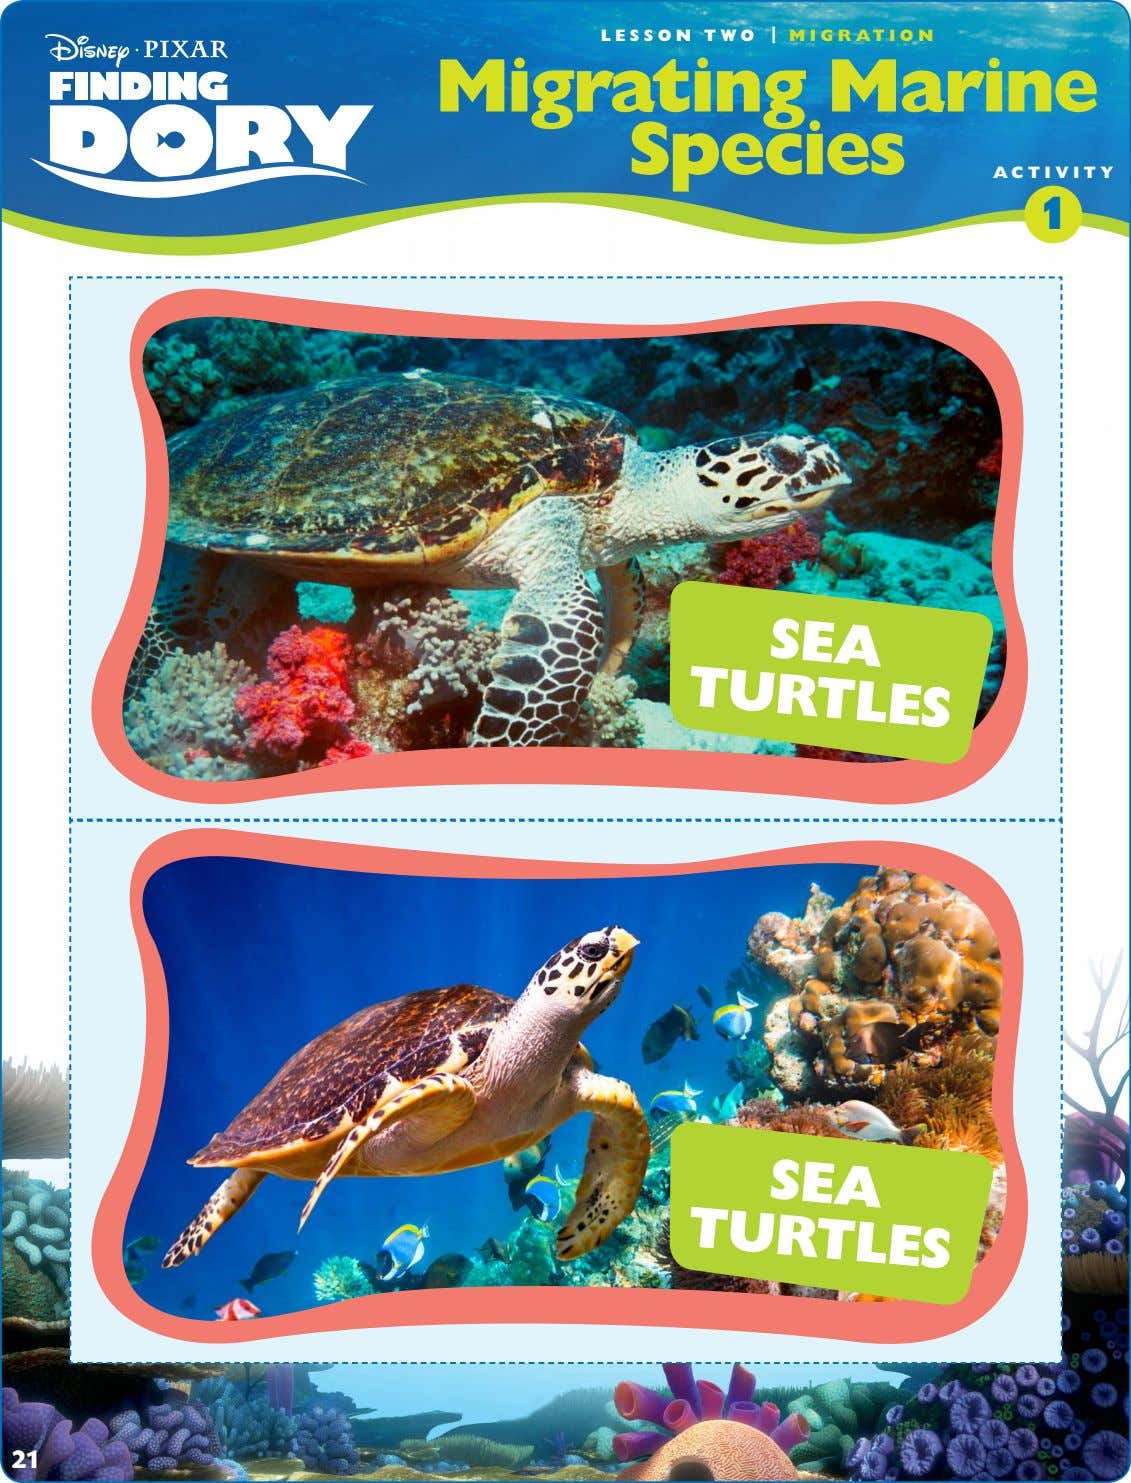 LESSON TWO | MIGRATION Migrating Marine Species ACTIVITY 1 SEA TURTLES SEA TURTLES 21